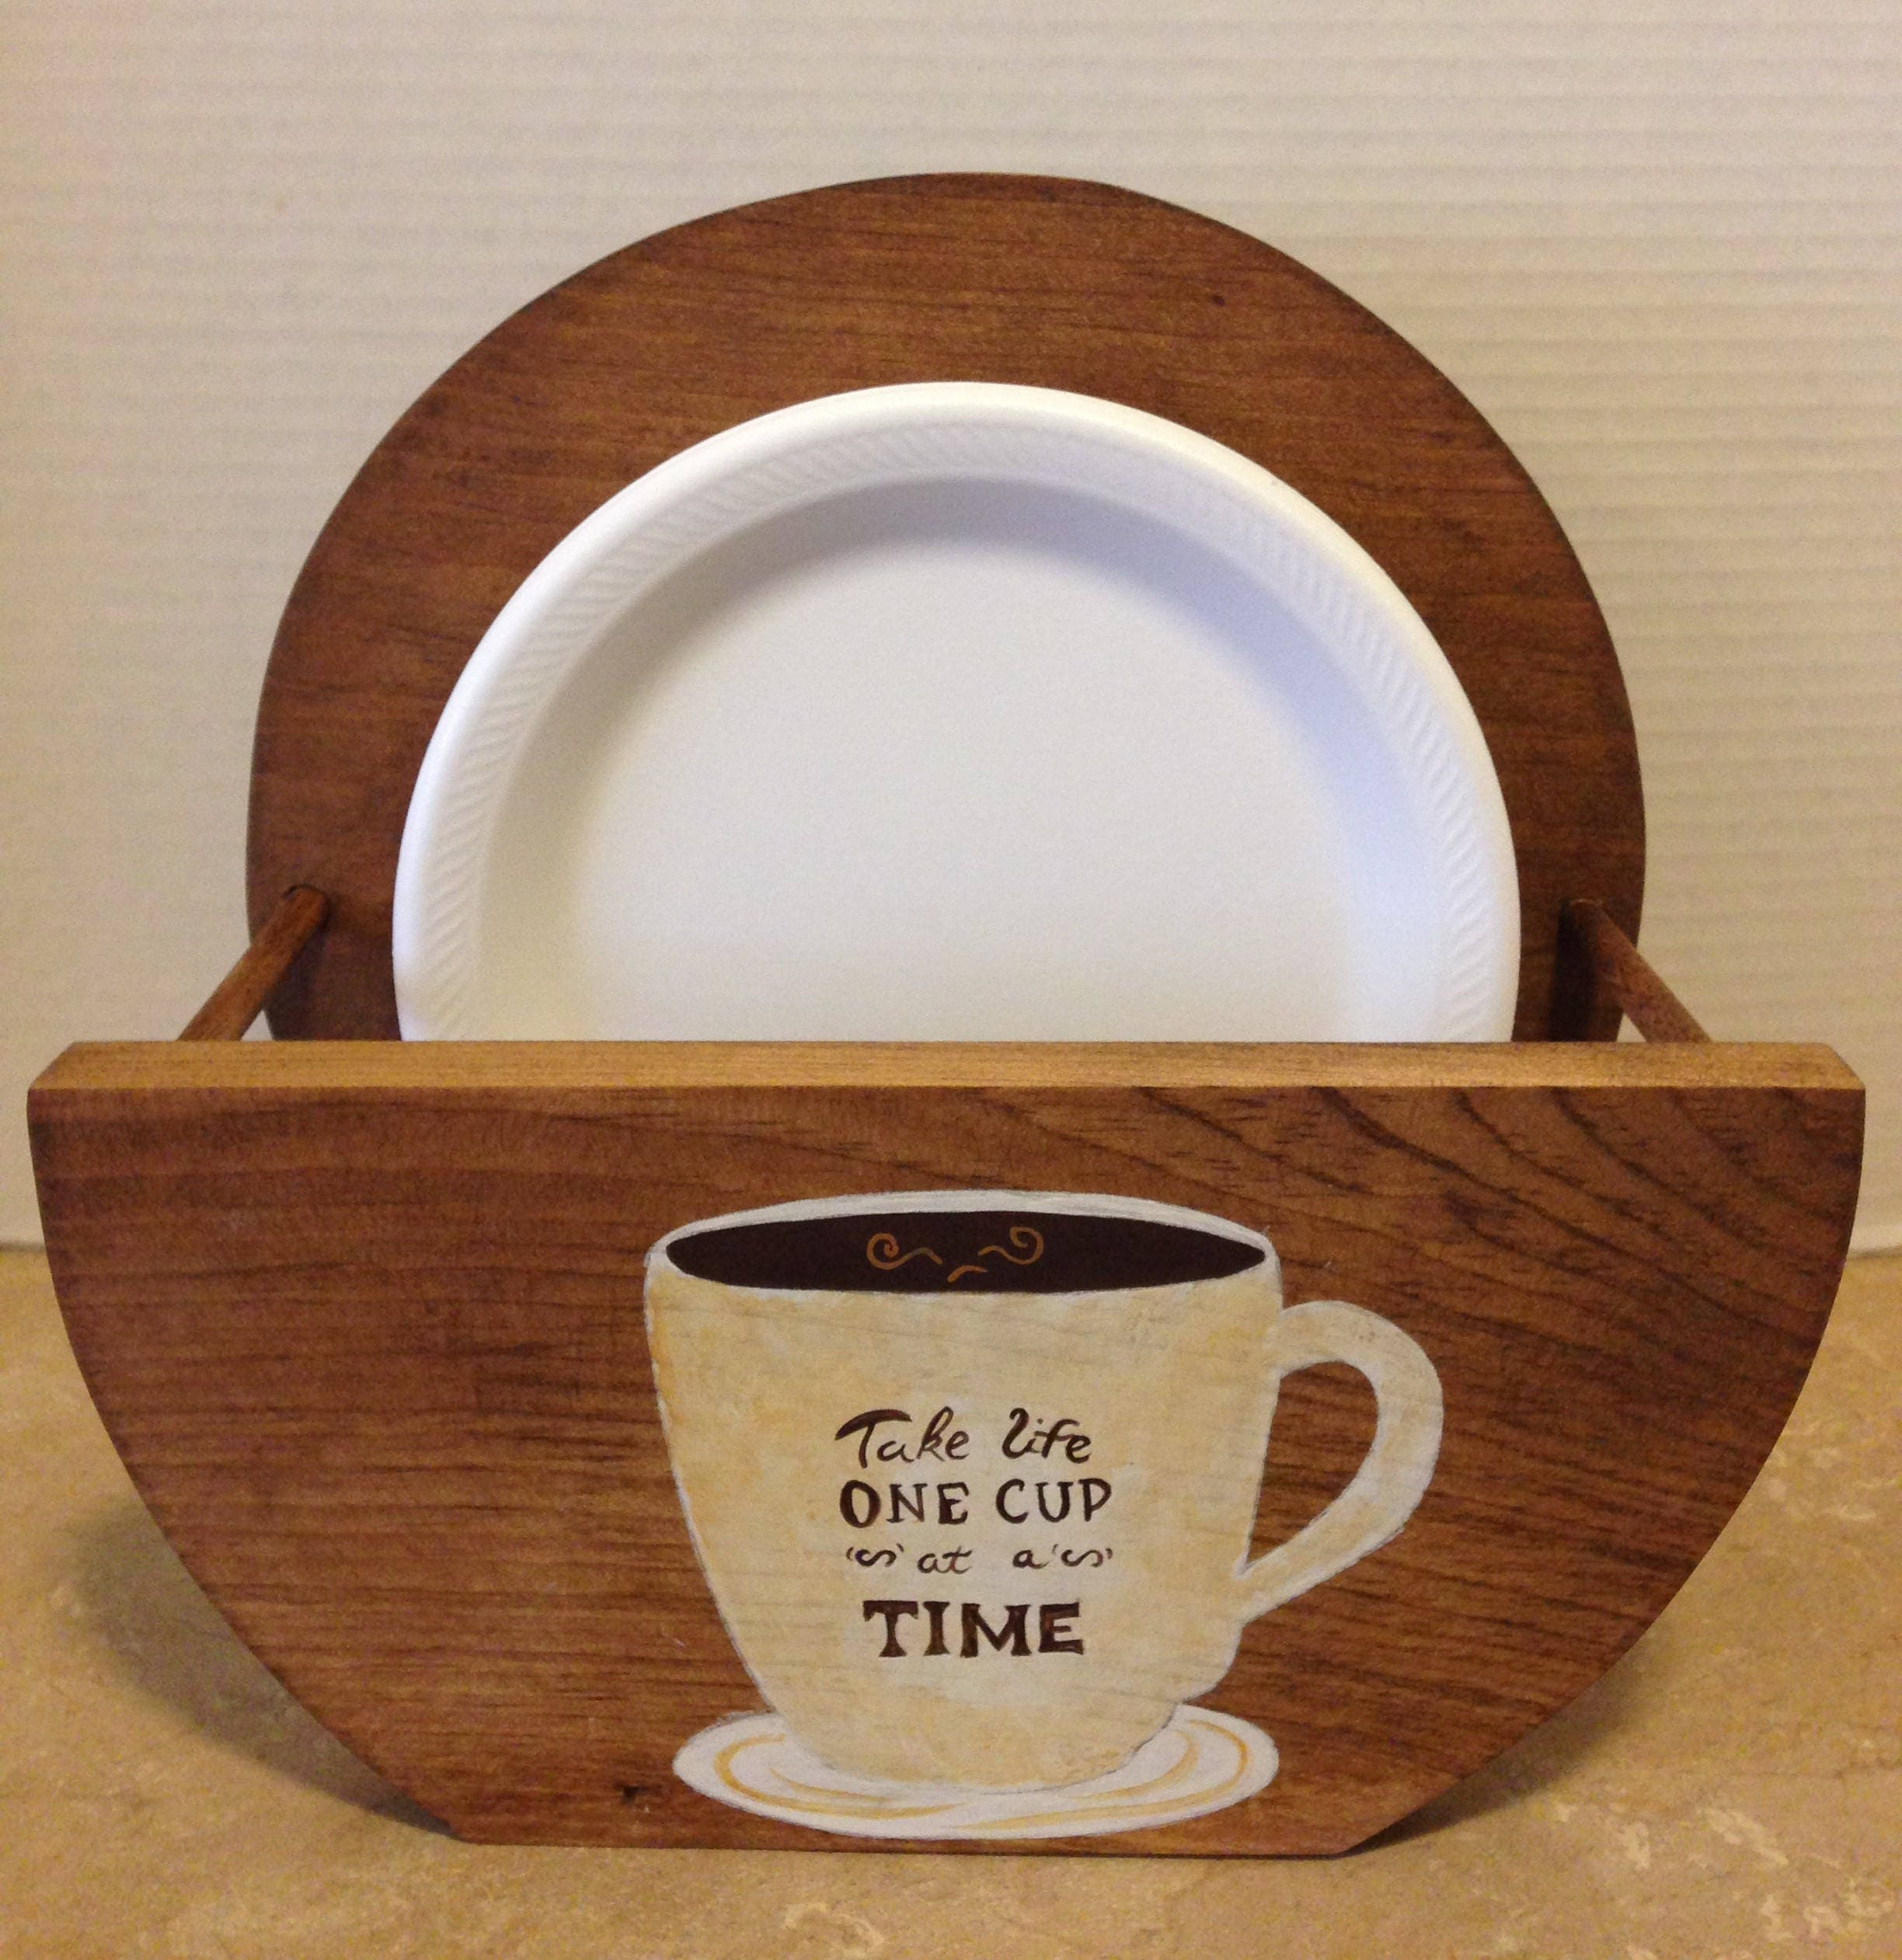 Paper Plate Holder Holder for Plates Paper Plates Wooden Plate Holder Coffee Decor Bistro Decor Coffee Lovers Gift Coffee Gift & Paper Plate Holder Holder for Plates Paper Plates Wooden Plate ...